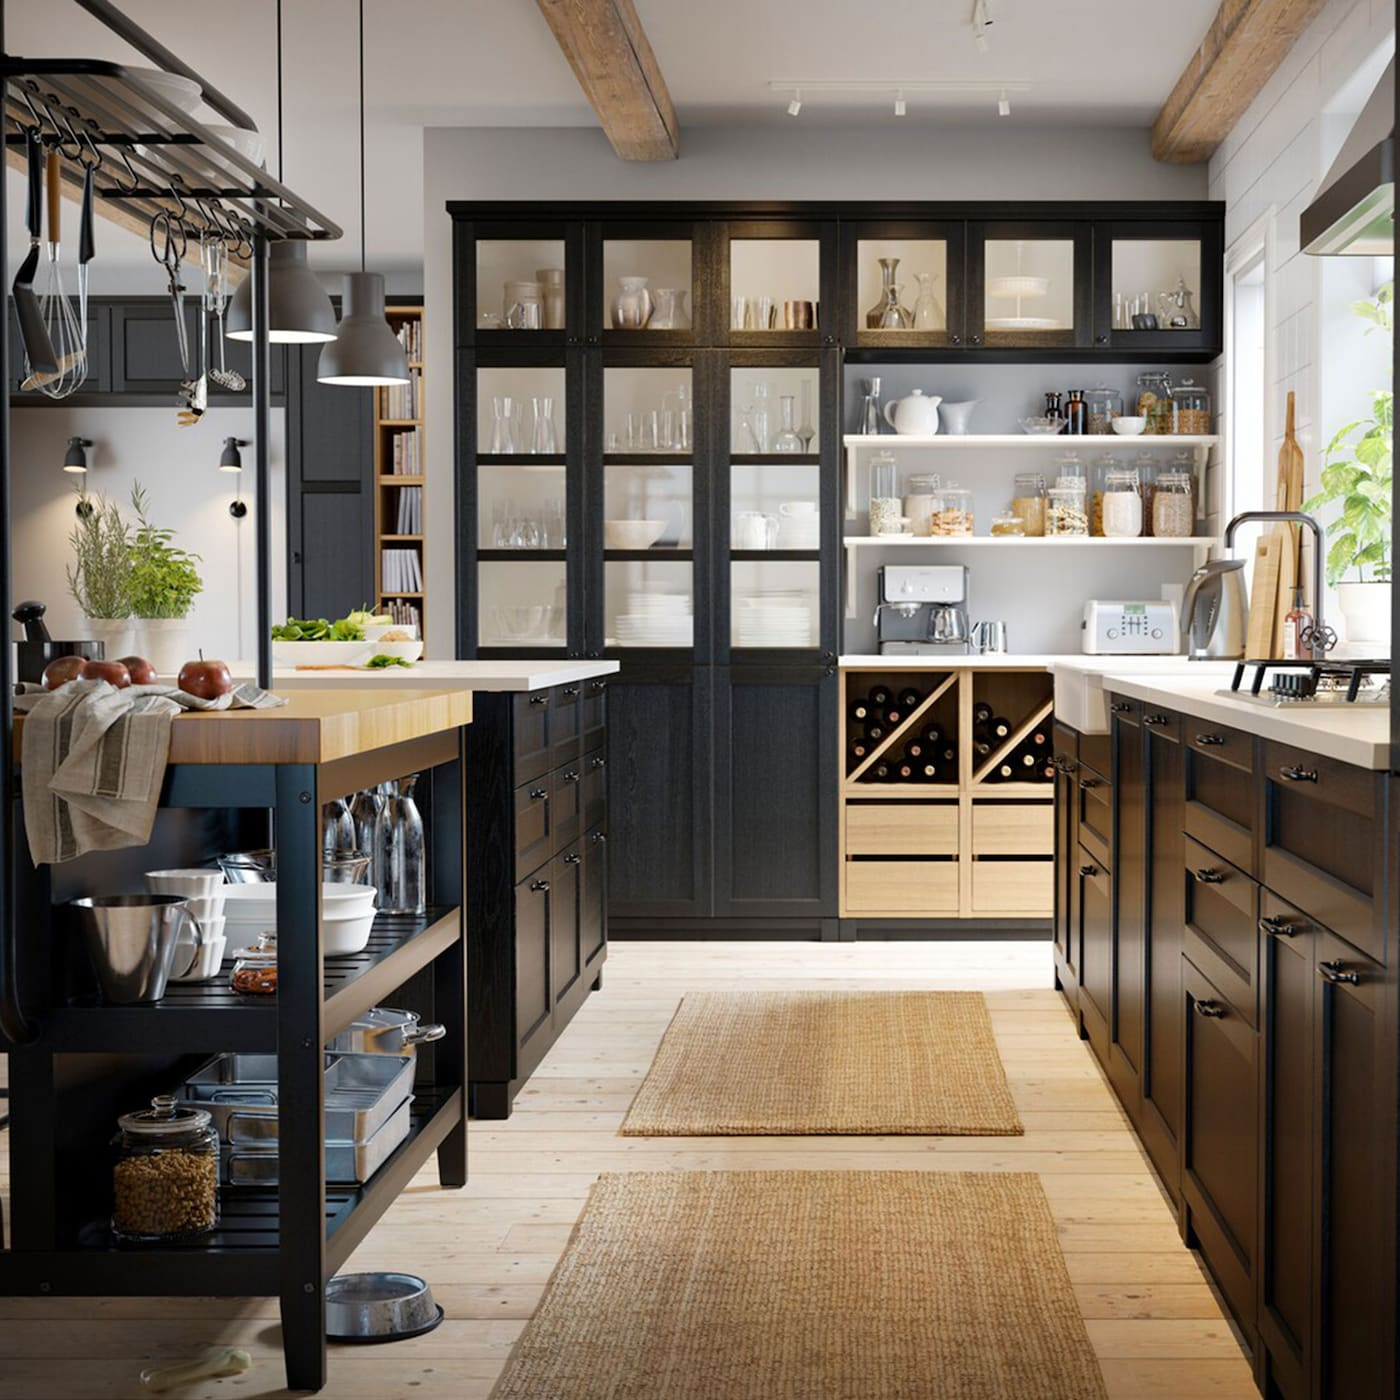 Ikea Showroom Kitchen: Store More With Your Kitchen Island